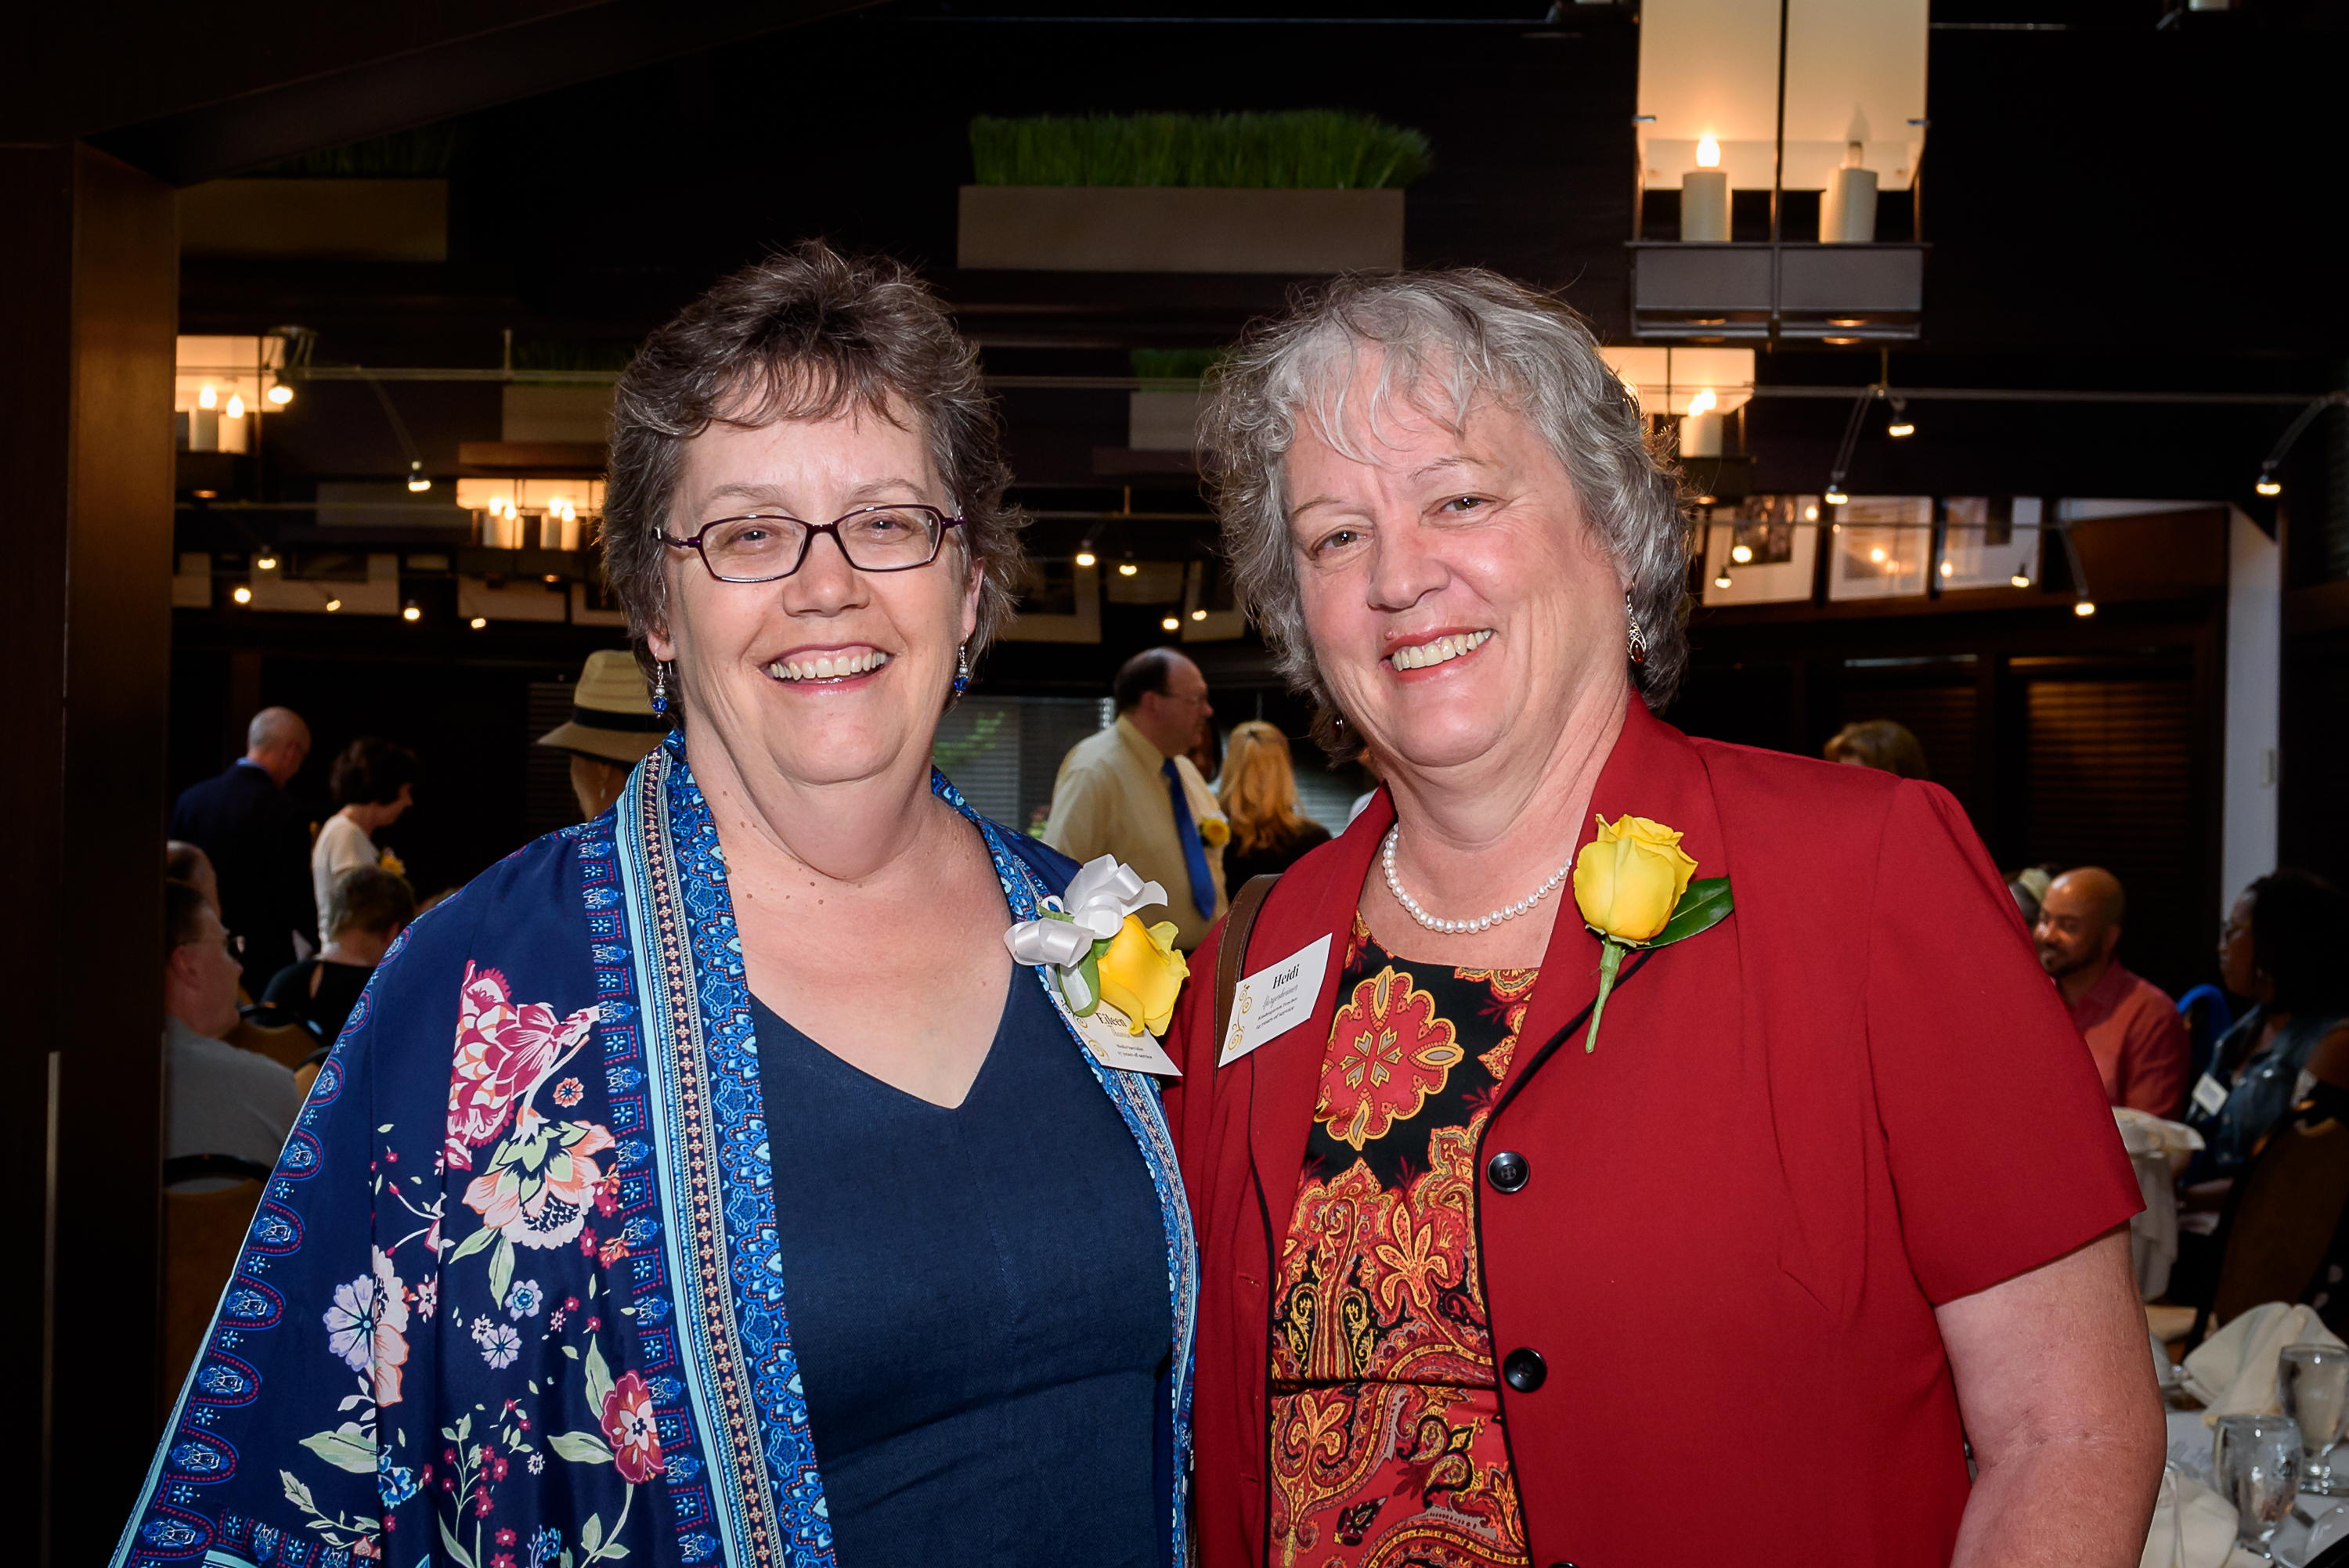 Two recent AAPS retirees wearing yellow rose bouquets at the Retirement Celebration